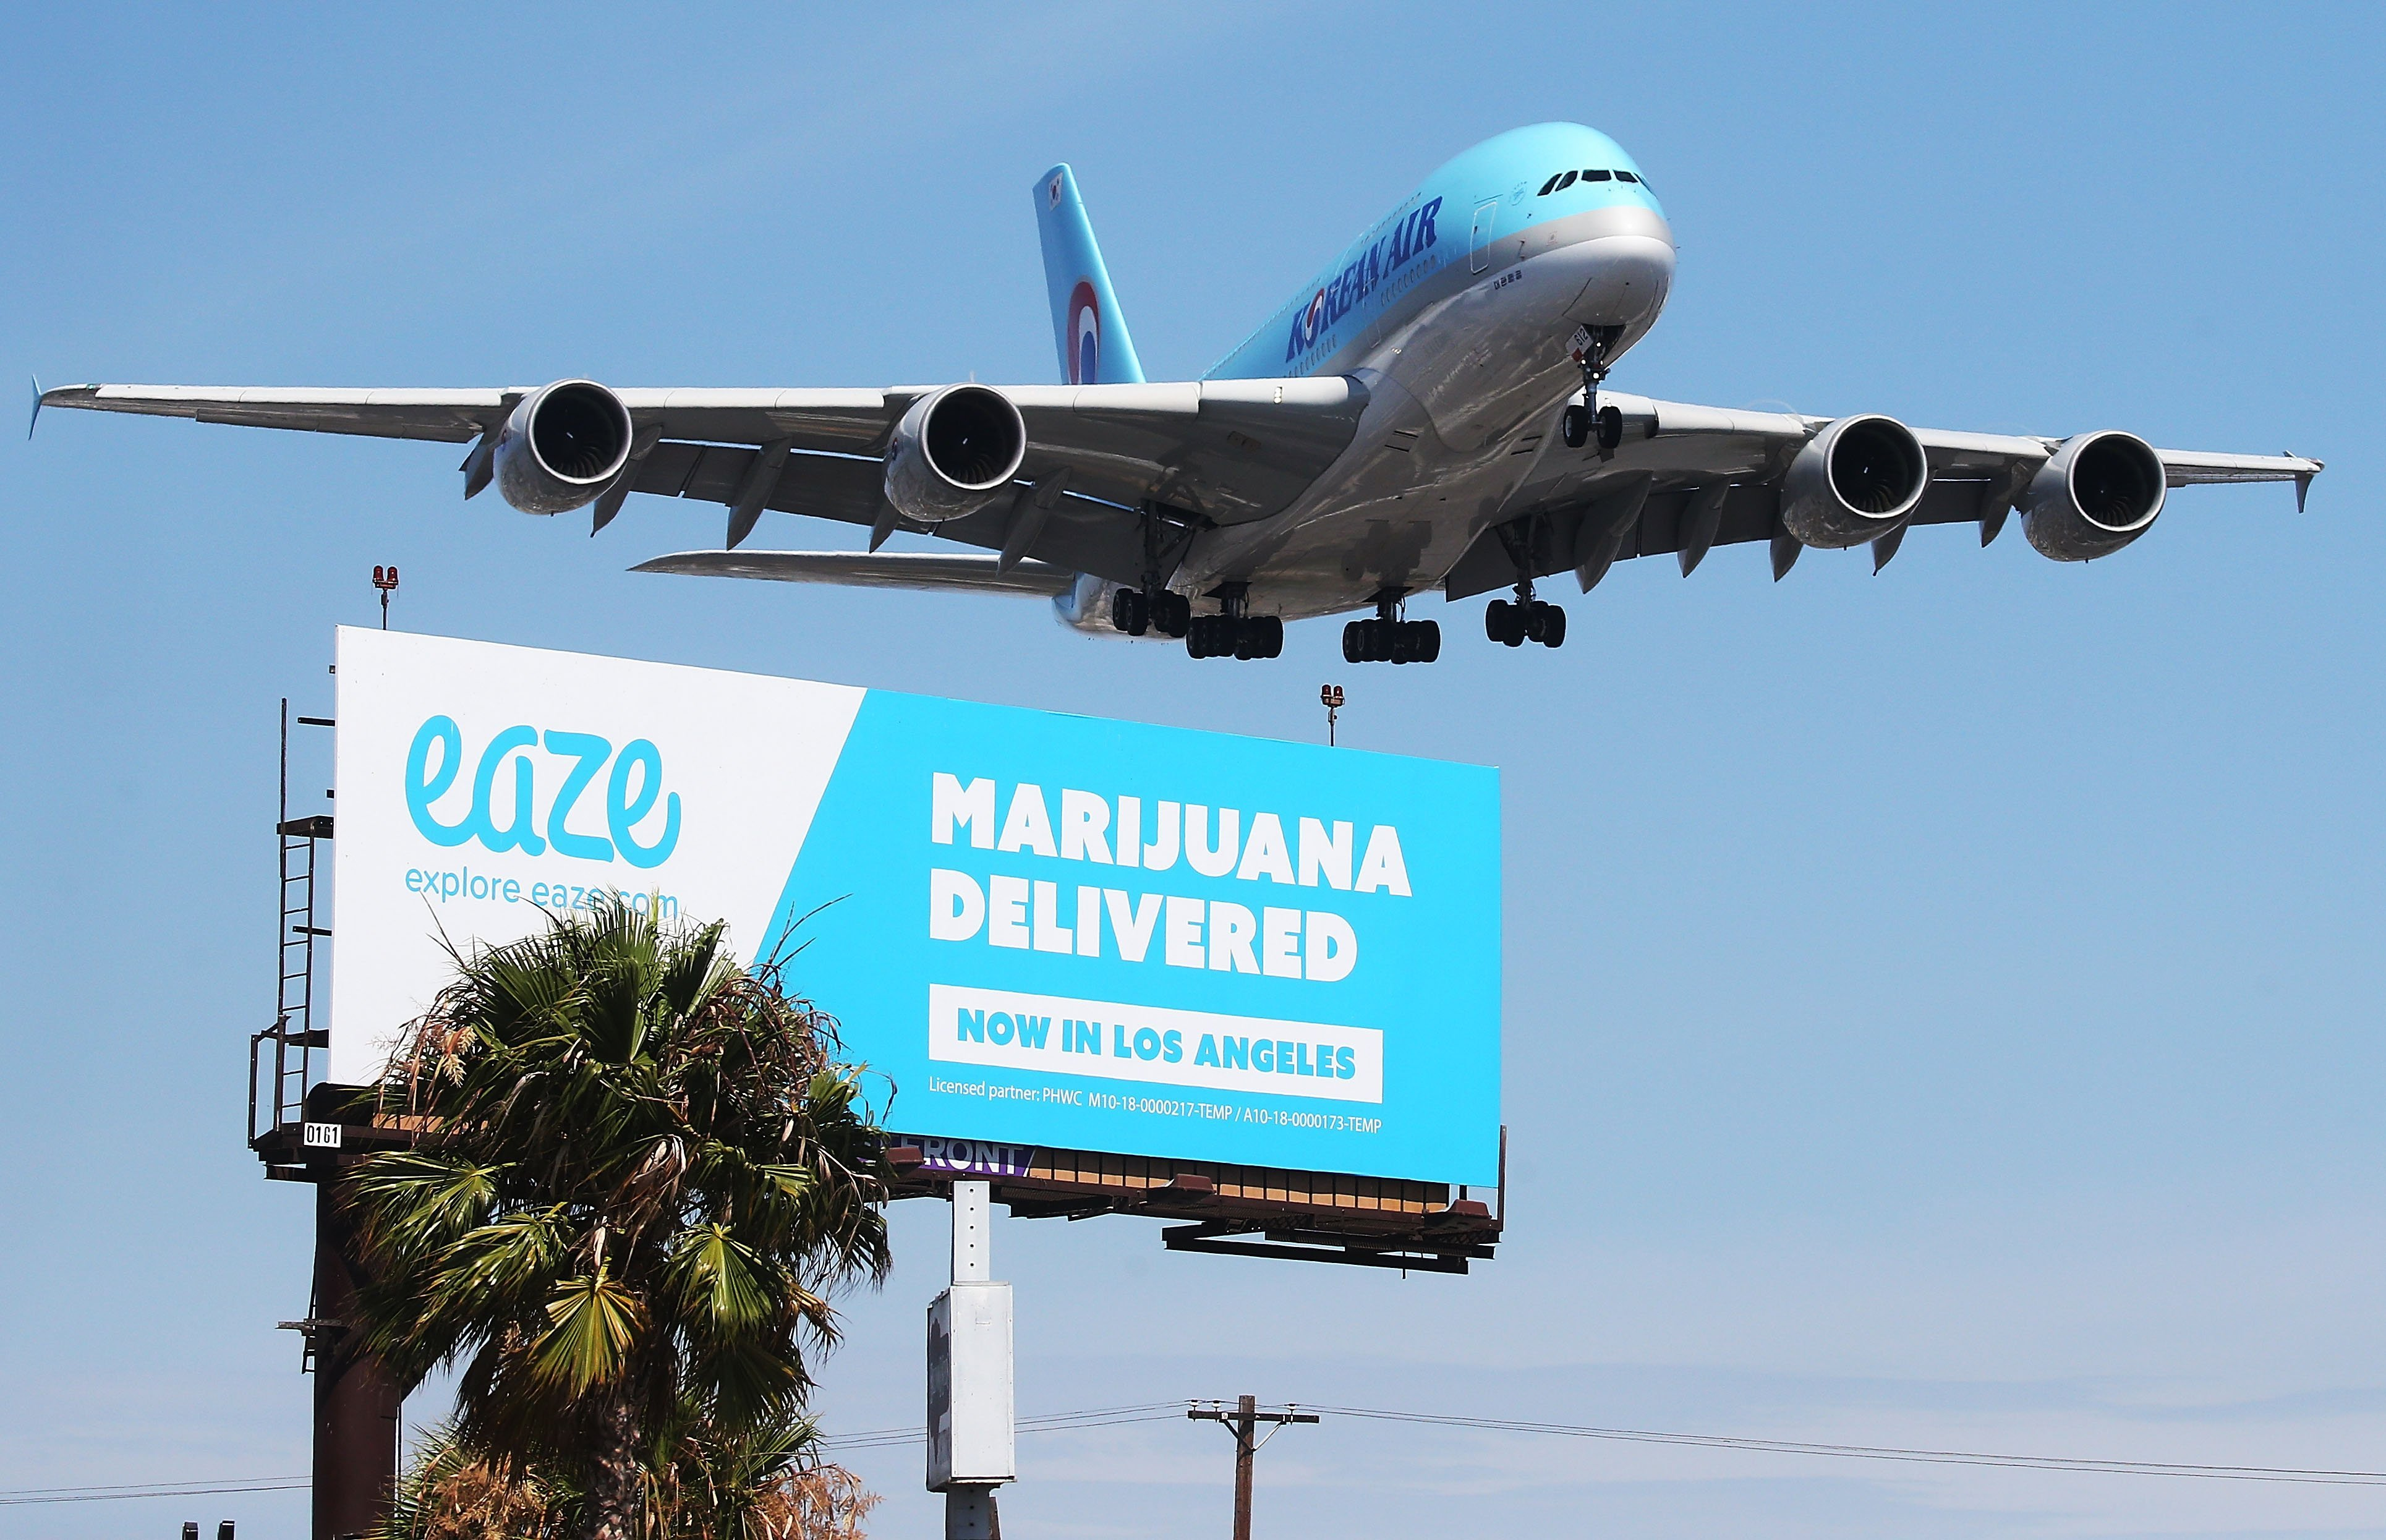 Yes, You Can Carry Marijuana at the Los Angeles Airport